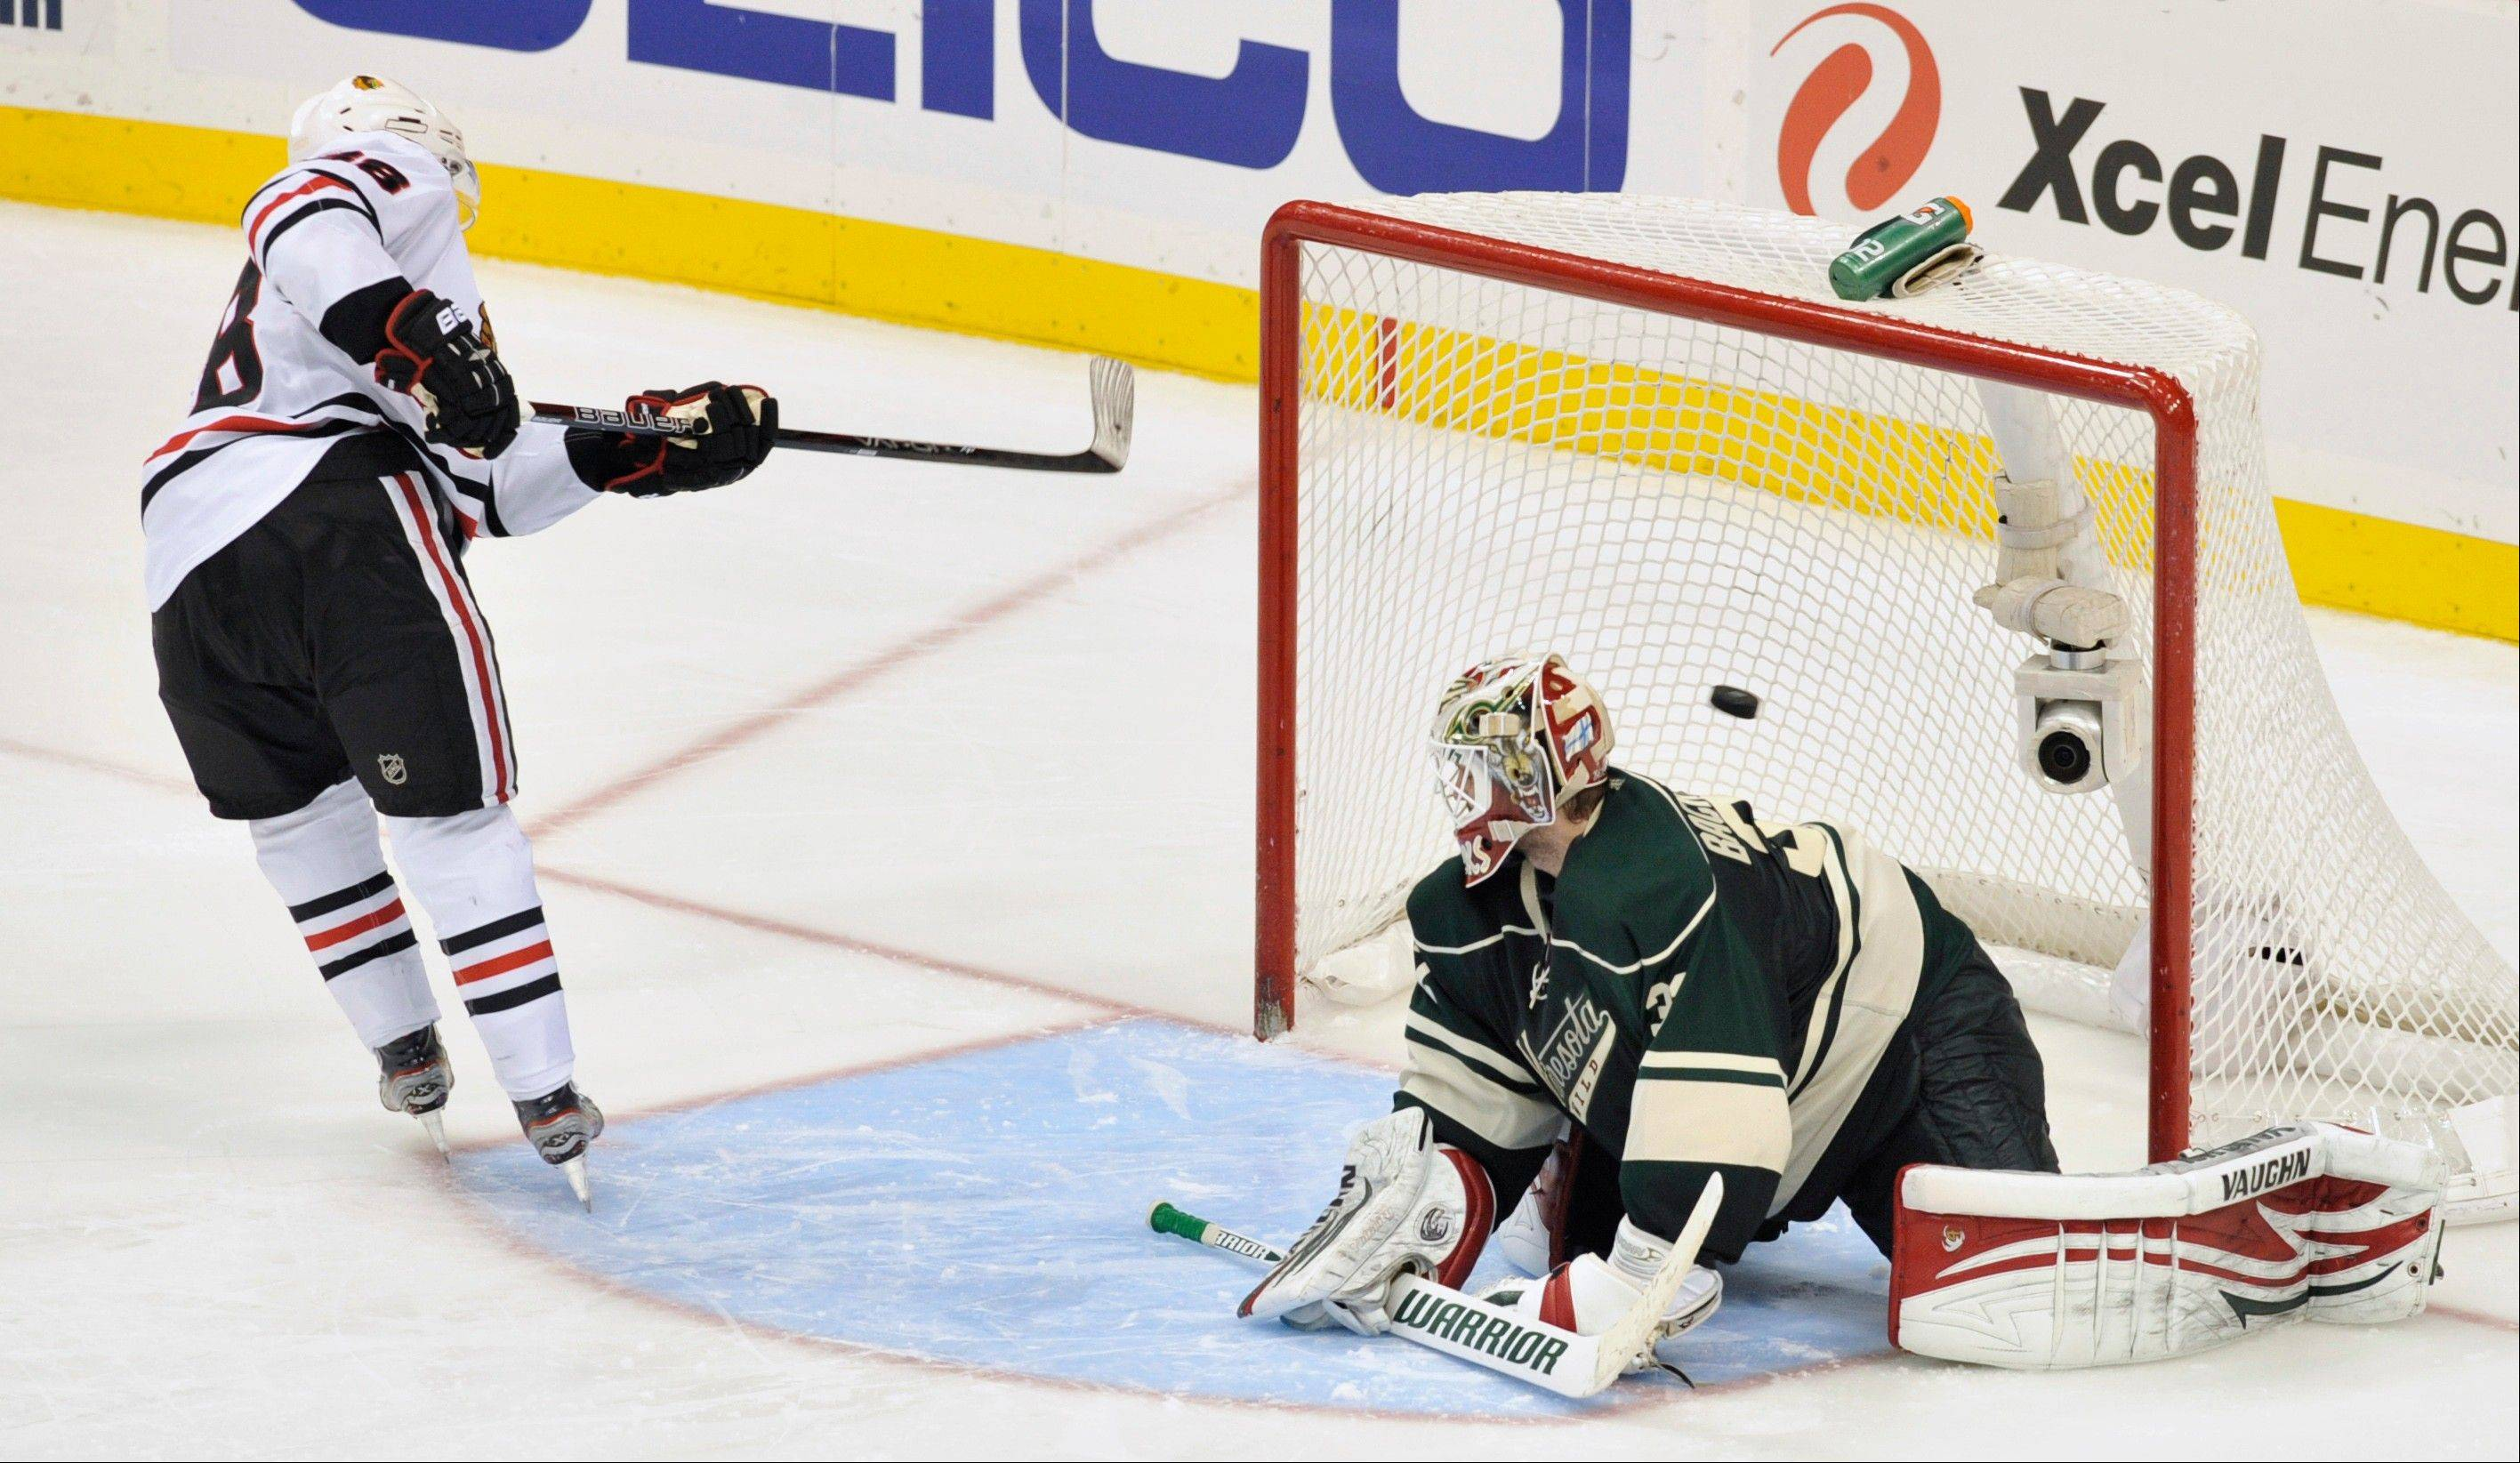 The Blackhawks' Patrick Kane puts the game-winning shootout goal past Wild goalie Niklas Backstrom on Wednesday night. Kane deked and slowed down long enough to get an open net on Backstrom.